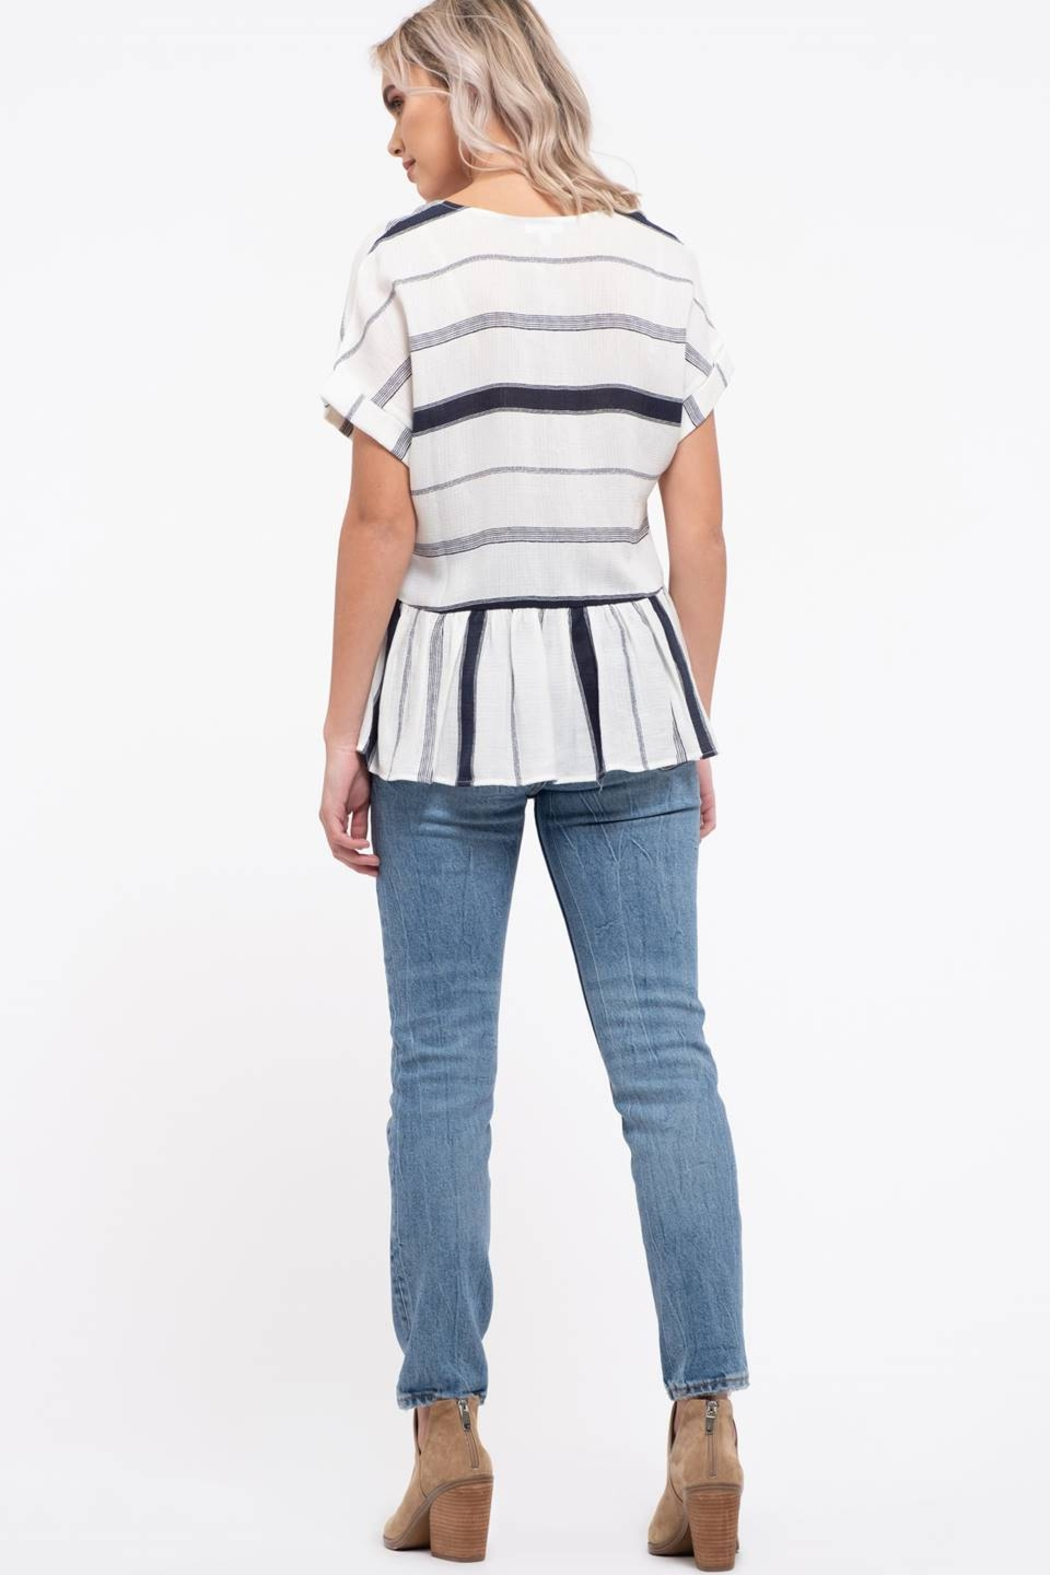 blu Pepper  Striped Button Down Top - Side Cropped Image